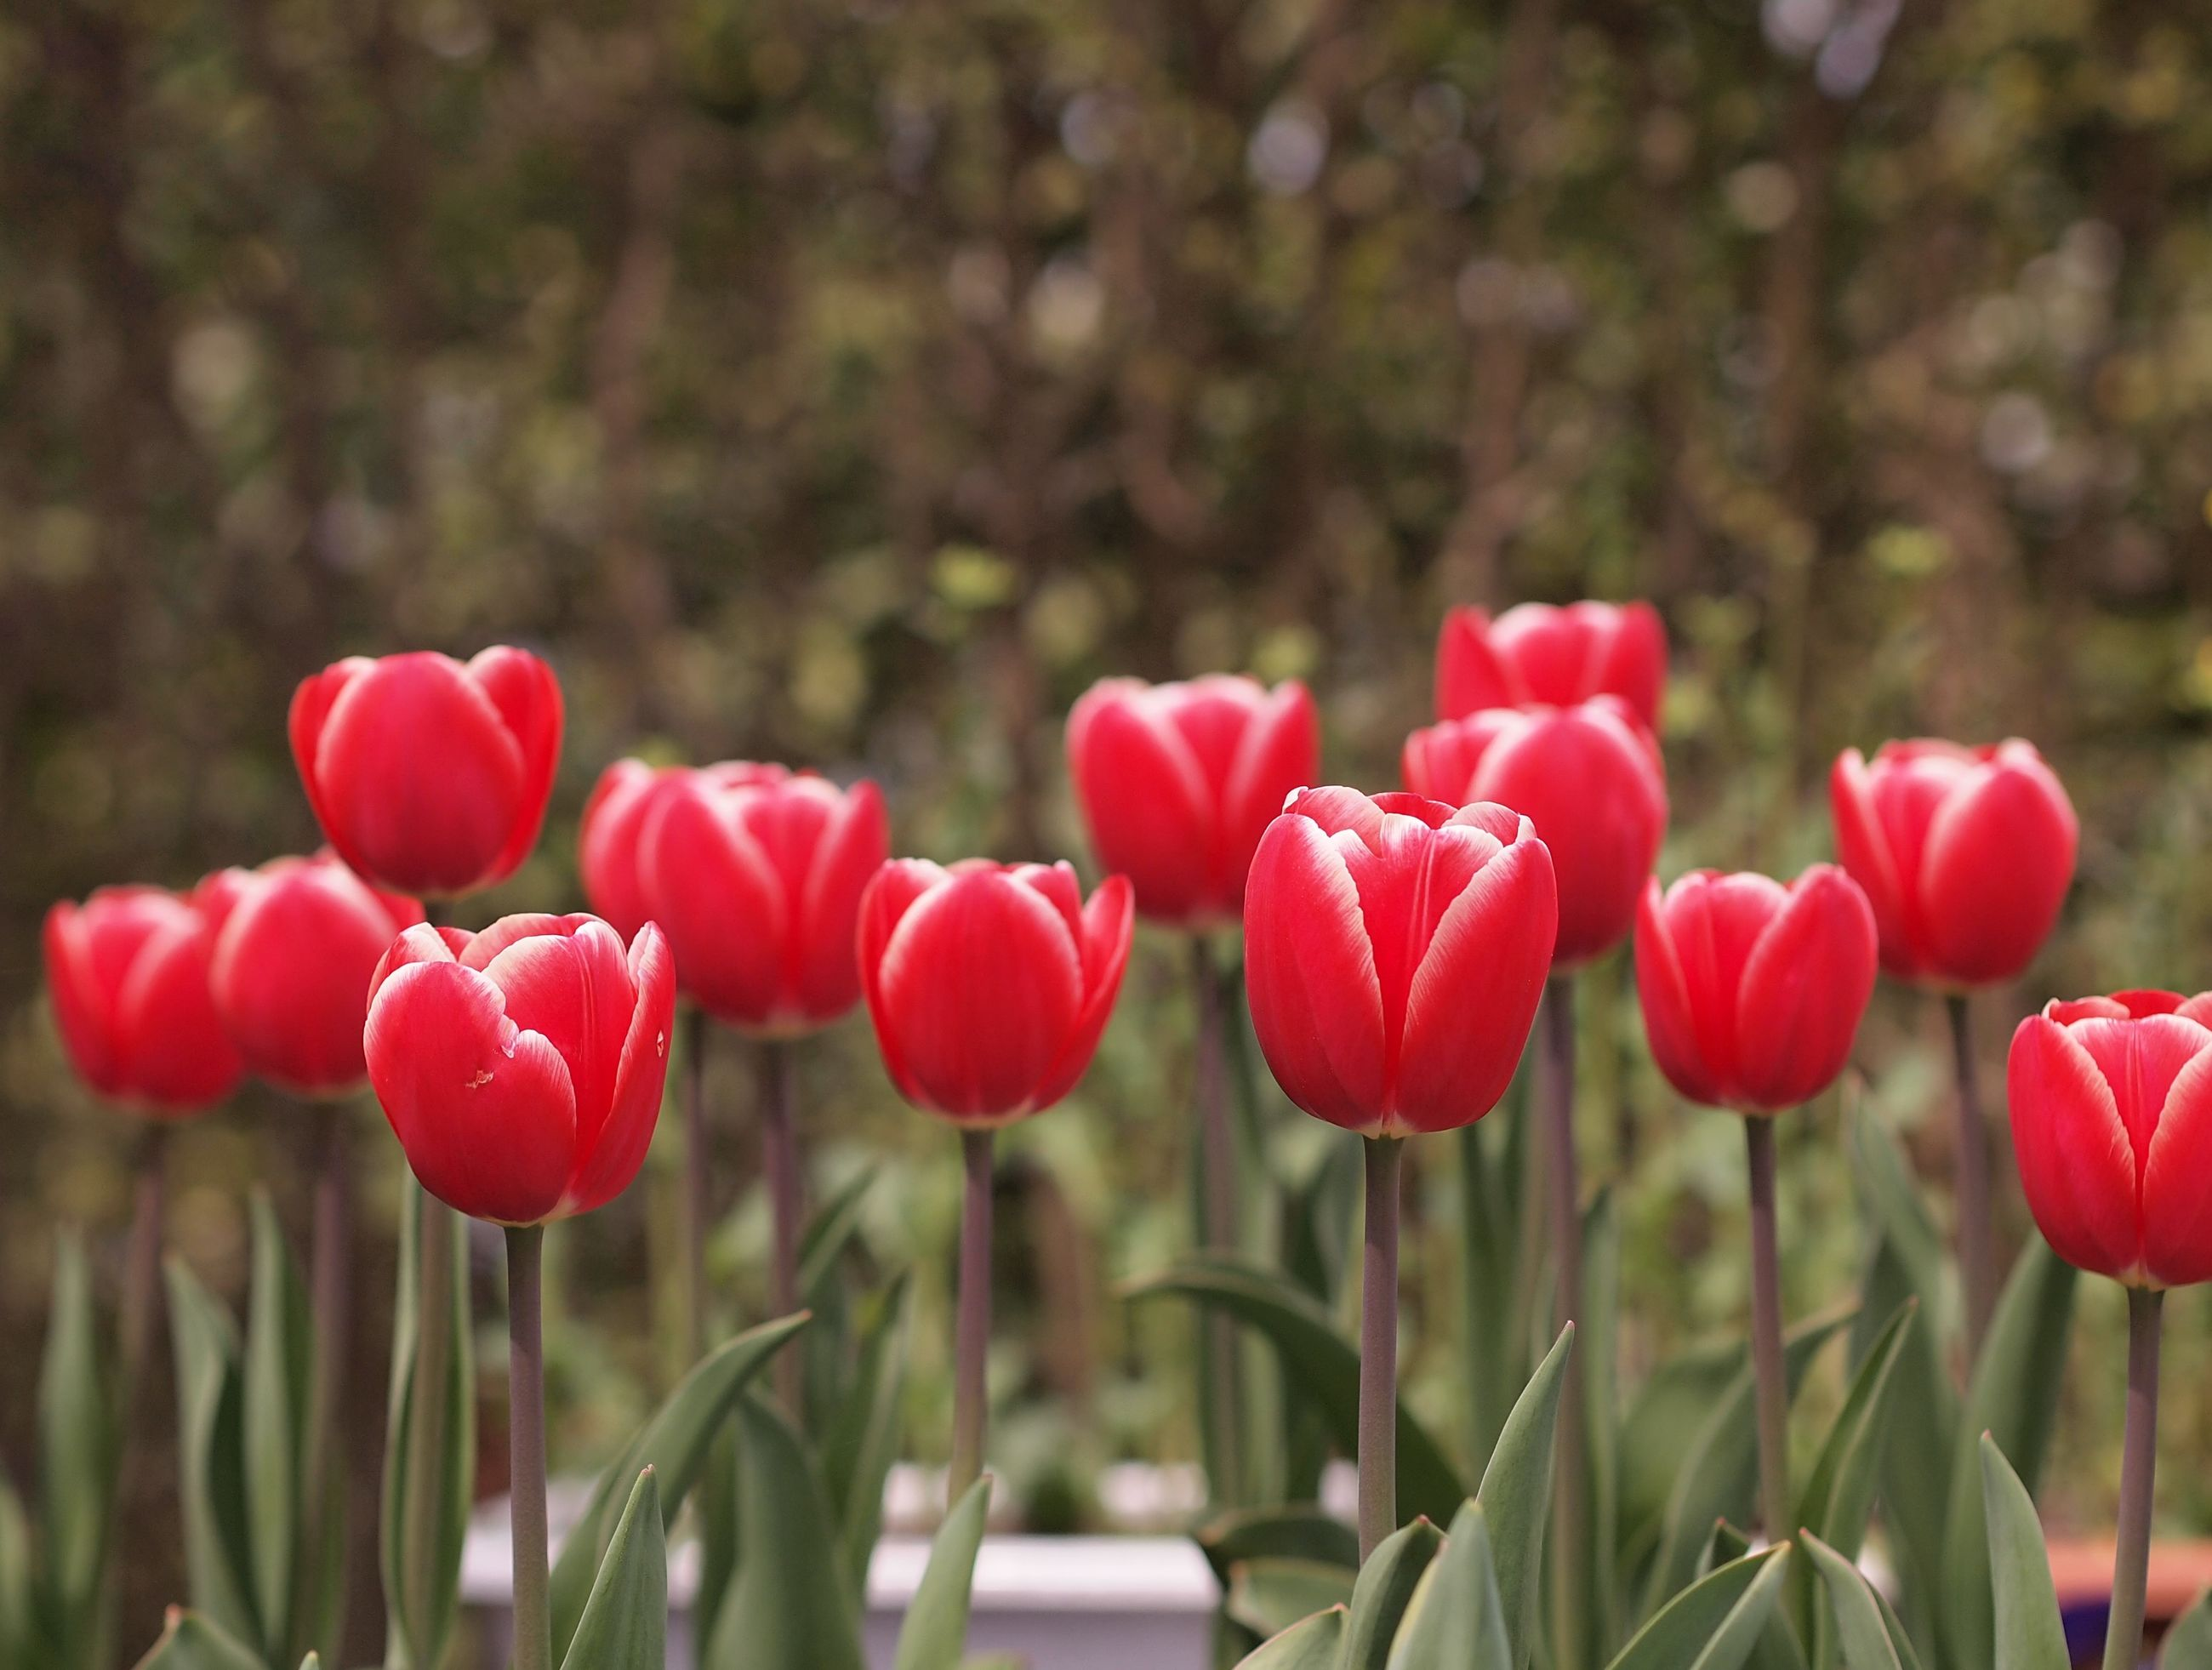 flower, freshness, red, petal, growth, fragility, beauty in nature, flower head, tulip, focus on foreground, blooming, nature, plant, close-up, field, stem, selective focus, park - man made space, pink color, in bloom